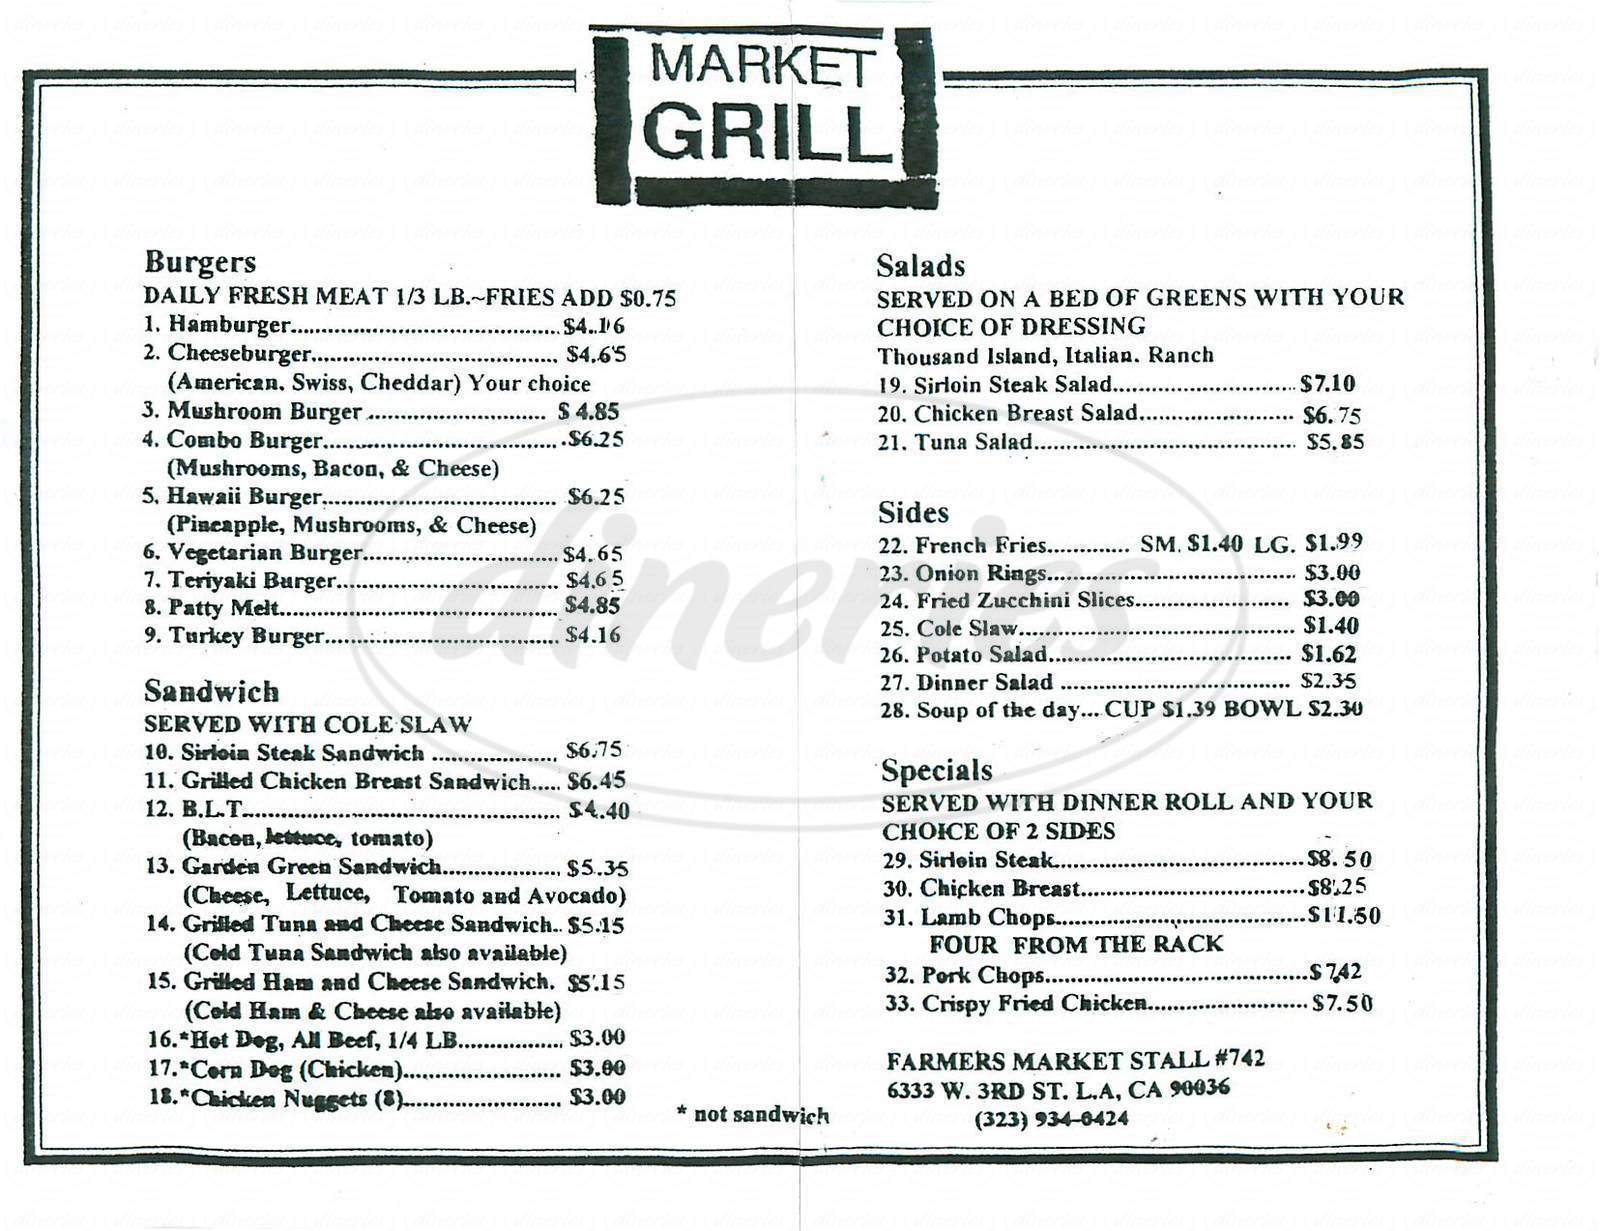 menu for Market Grill